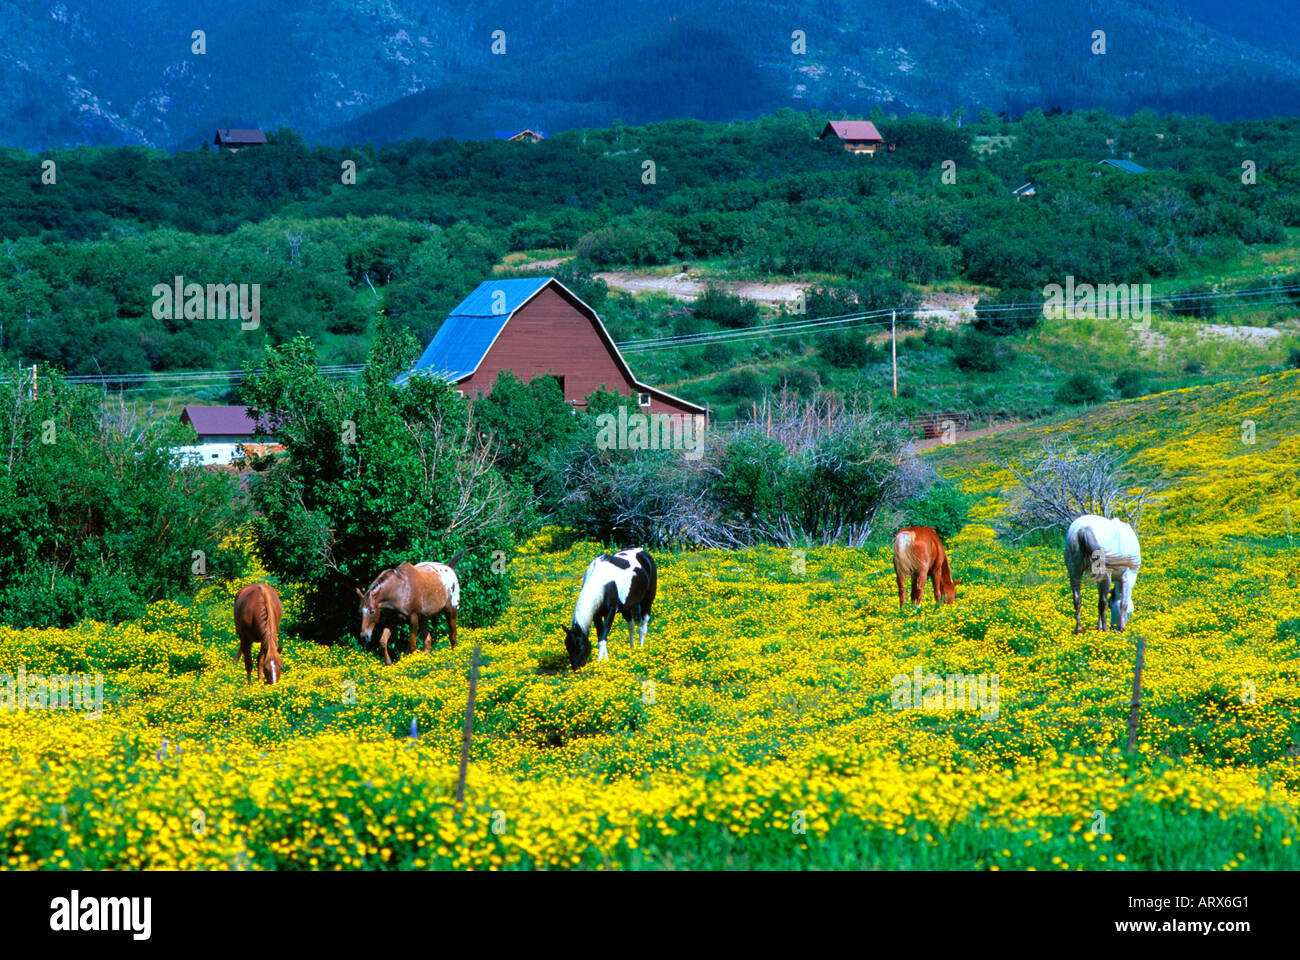 Flowers steamboat springs colorado stock photos flowers horses in a field of yellow flowers near steamboat springs colorado usa stock image dhlflorist Choice Image